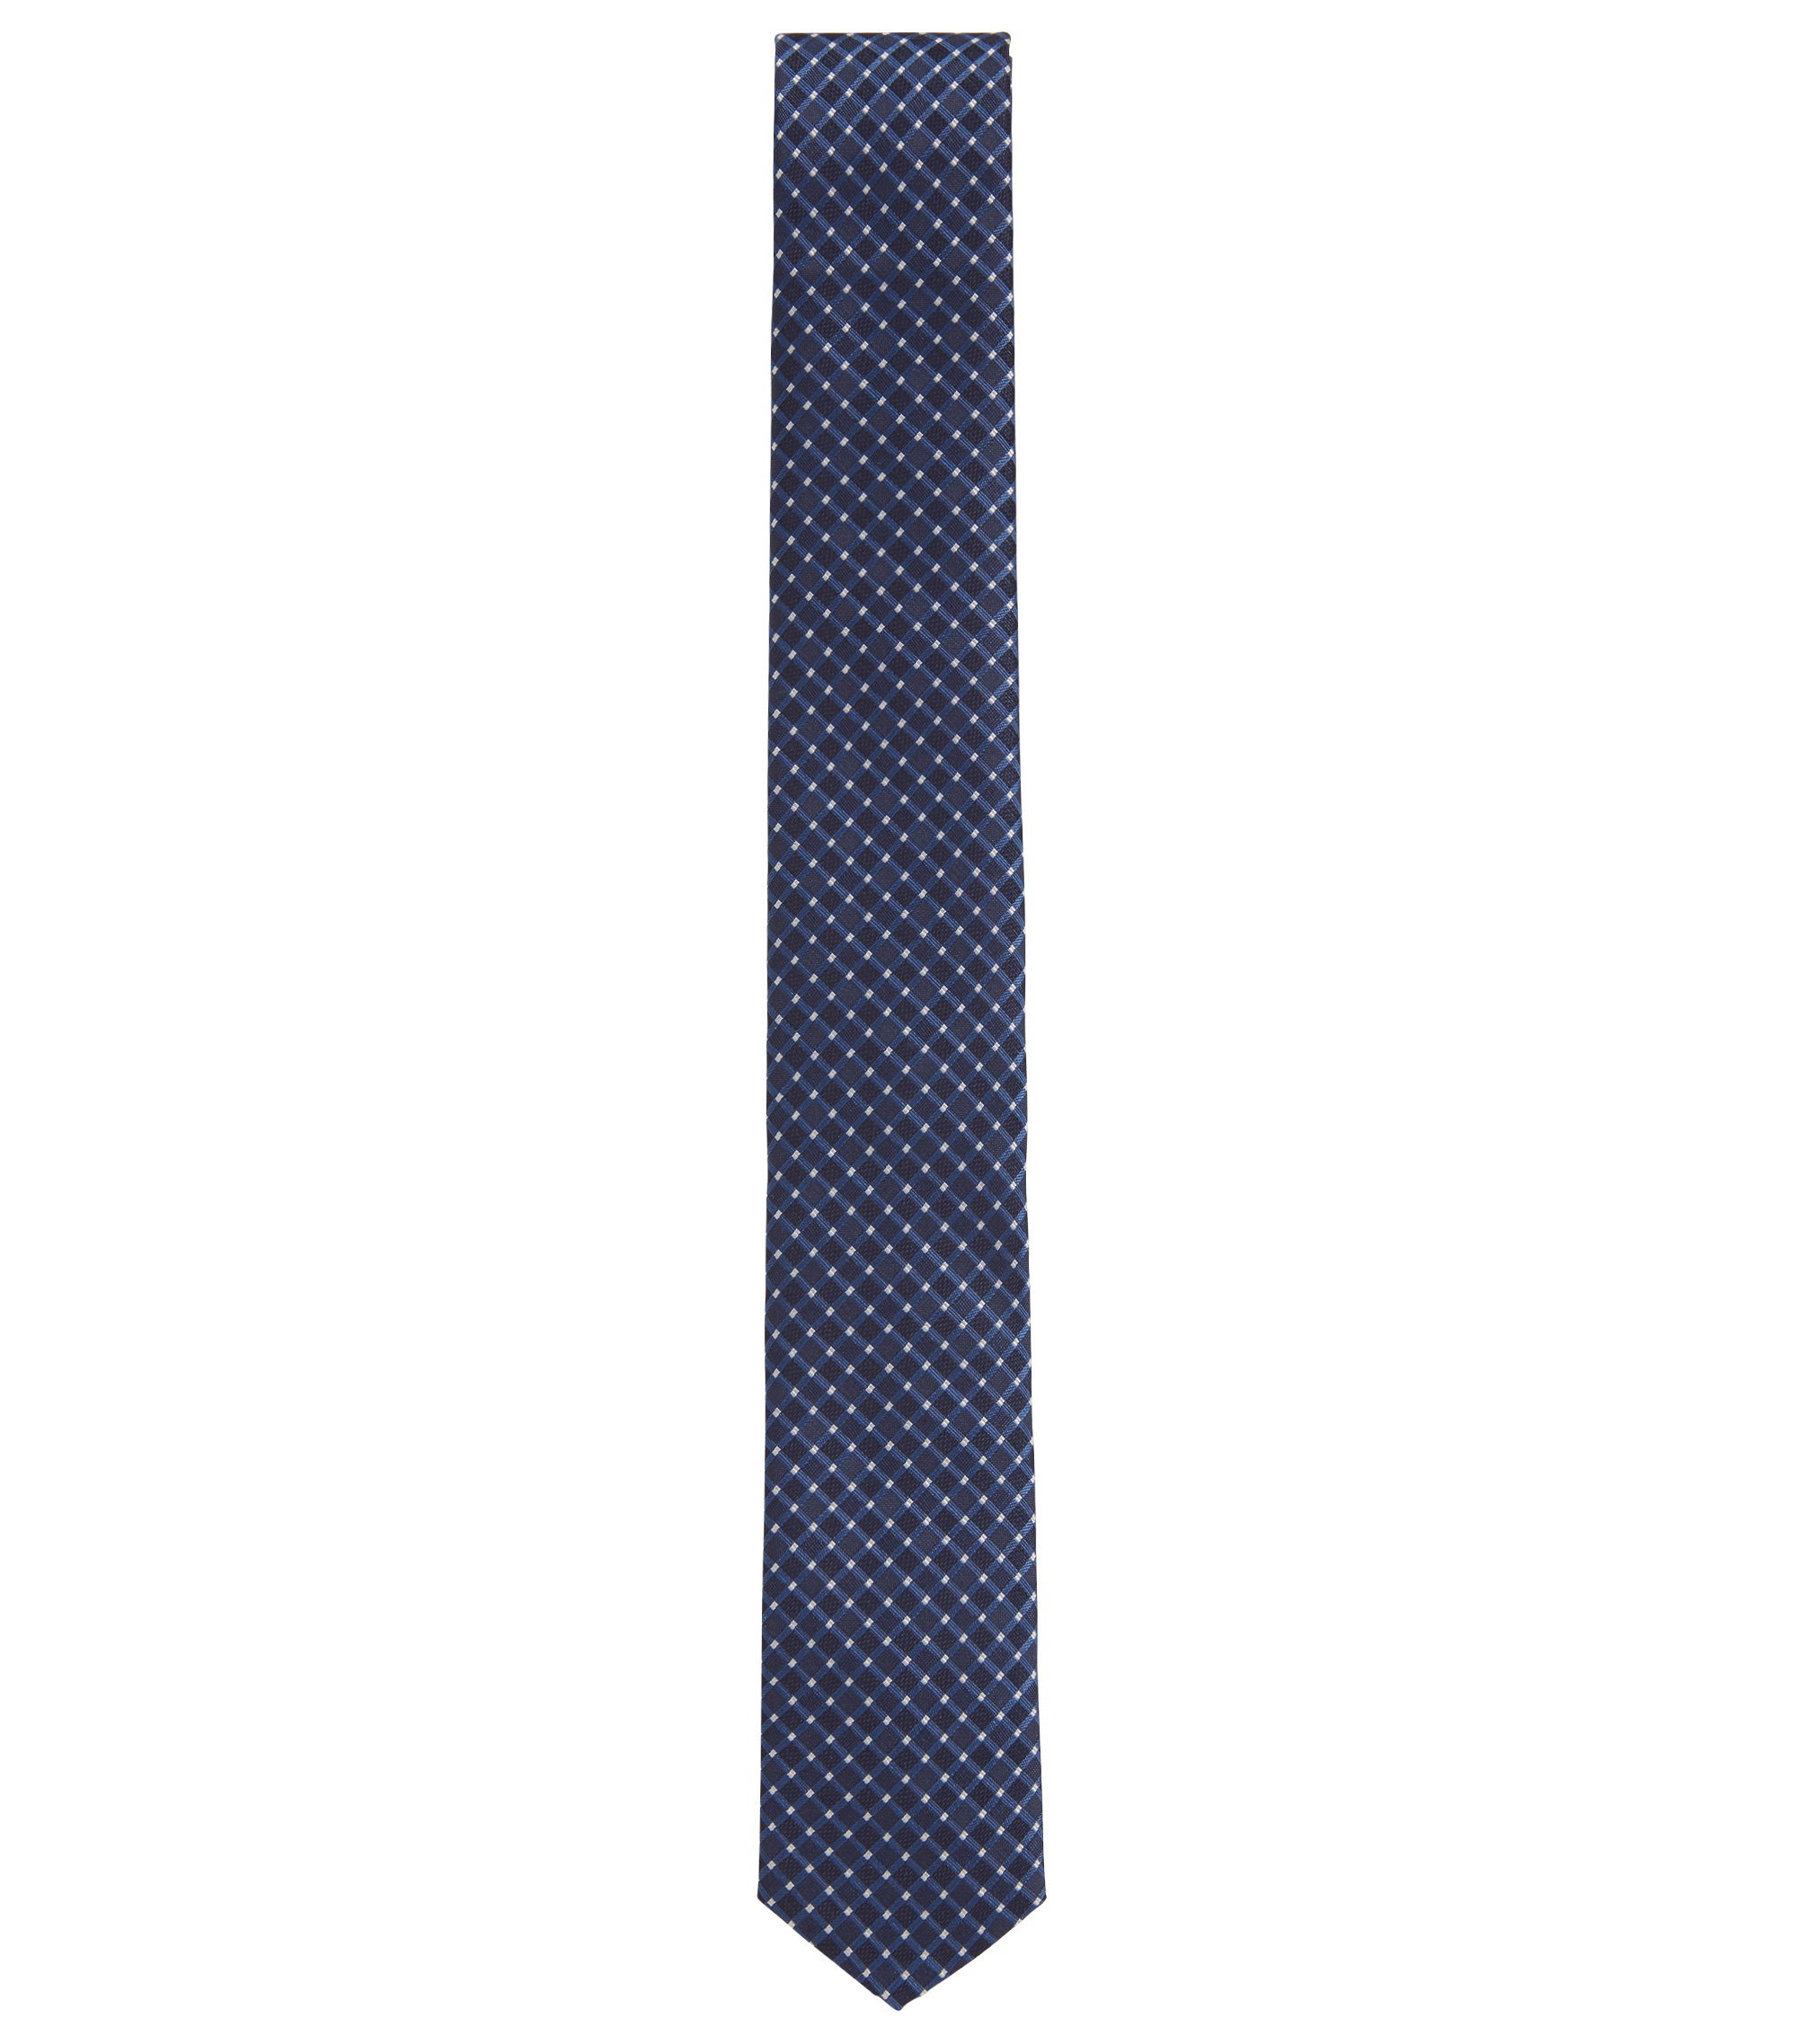 Slimline patterned tie in water-repellent silk jacquard, Open Blue